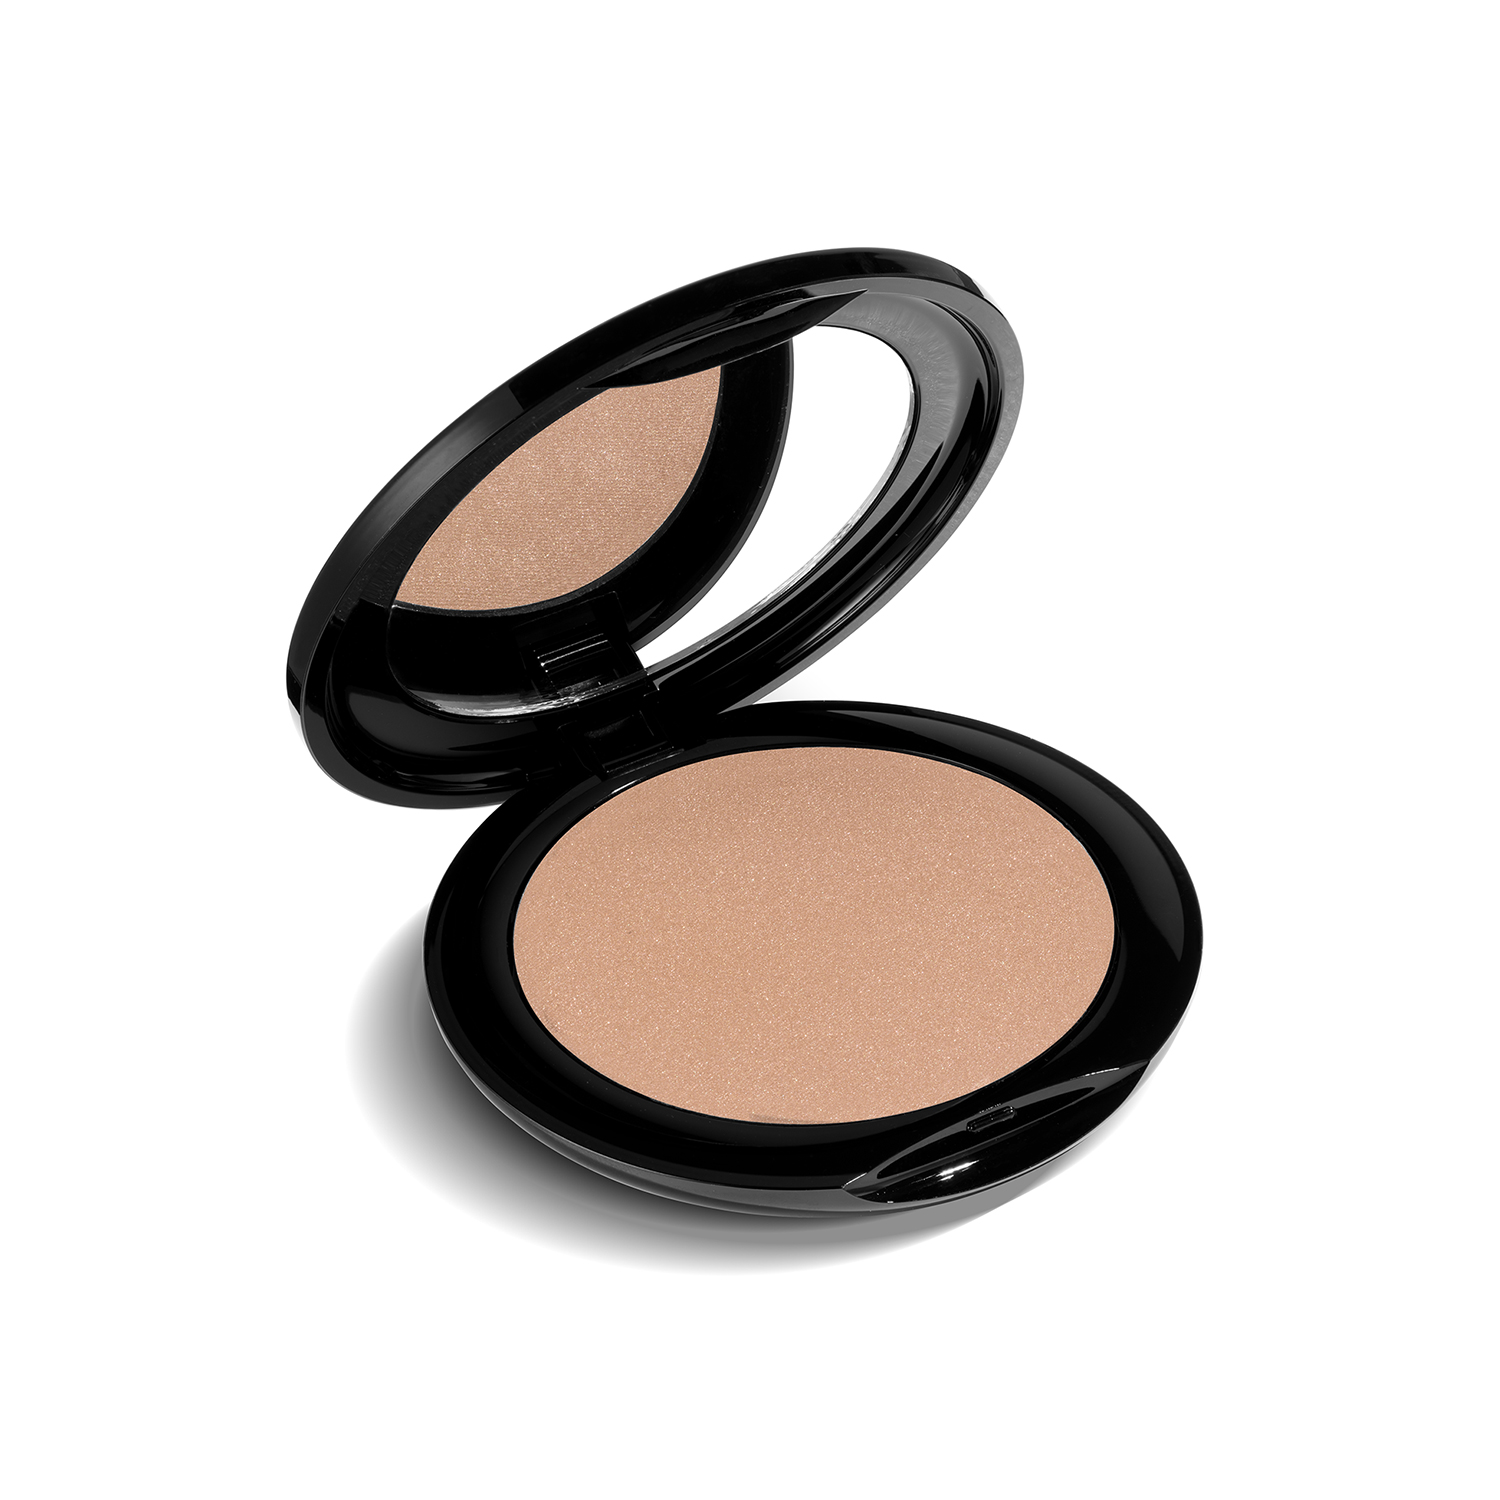 PERFECT FINISH COMPACT FACE POWDER (04 Rosy Beige)